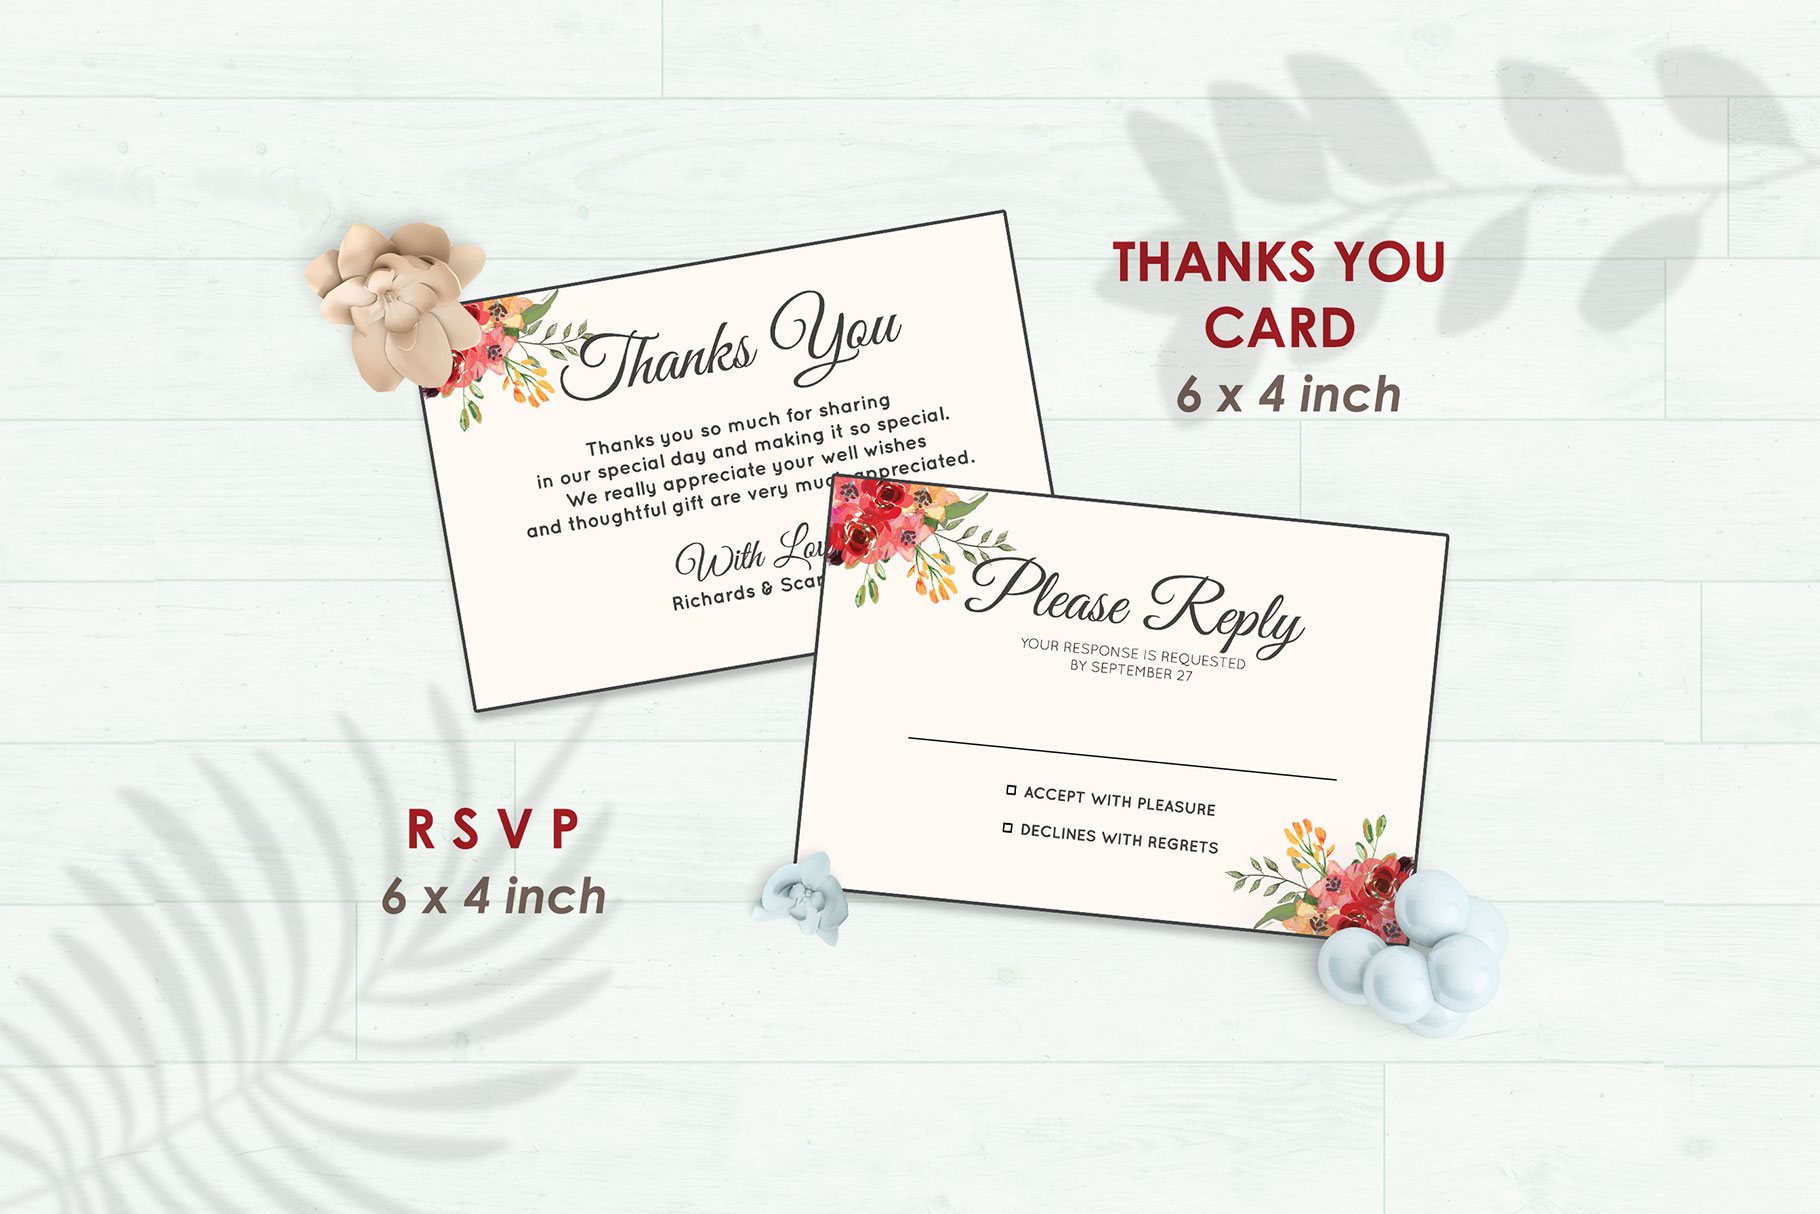 Wedding Invitation Set #2 Watercolor Floral Flower Style example image 4